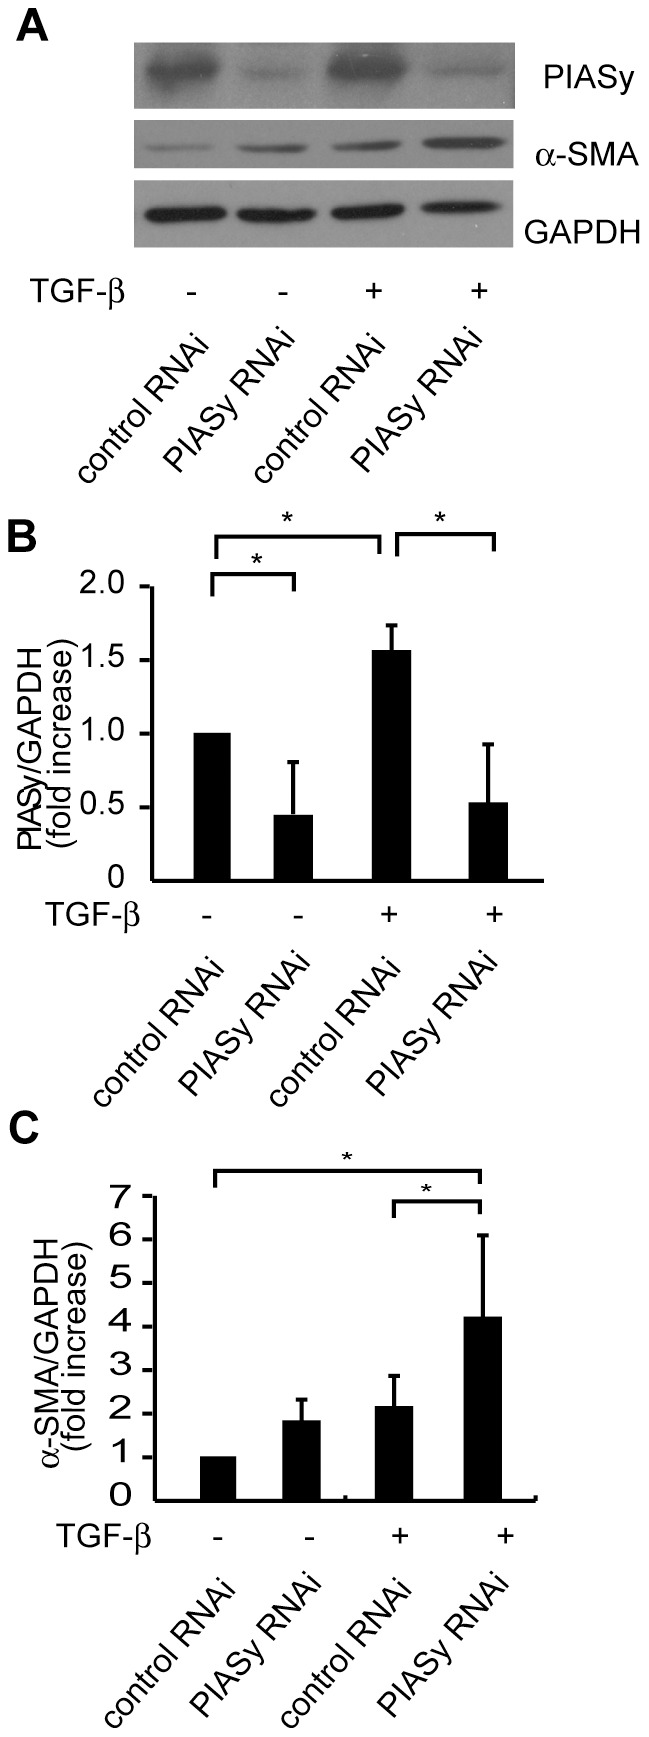 Effect of siRNA specific for PIASy on TGF-β mediated α-SMA expression in mesangial cells. (A) Mouse MCs were transfected with siRNA against PIASy or control siRNA. 12 hours after the transfection, MCs were serum-starved in starving medium (0.5% bovine serum albumin/DMEM) for 36 h. MCs were then stimulated with TGF-β (1 ng/ml) for 24 hours. Total cell lysates were examined by Western blot analysis using anti-PIASy and anti-α-SMA antibodies. Representative data from three independent experiments is shown. (B and C ) Optical densitometry of PIASy and α-SMA in Western blotting. The values of PIASy, E12 and α-SMA were normalized for that of GAPDH and compared with the values of cells transfected with control siRNA. GAPDH, glyceraldehyde-3-phosphate dehydrogenase. *P